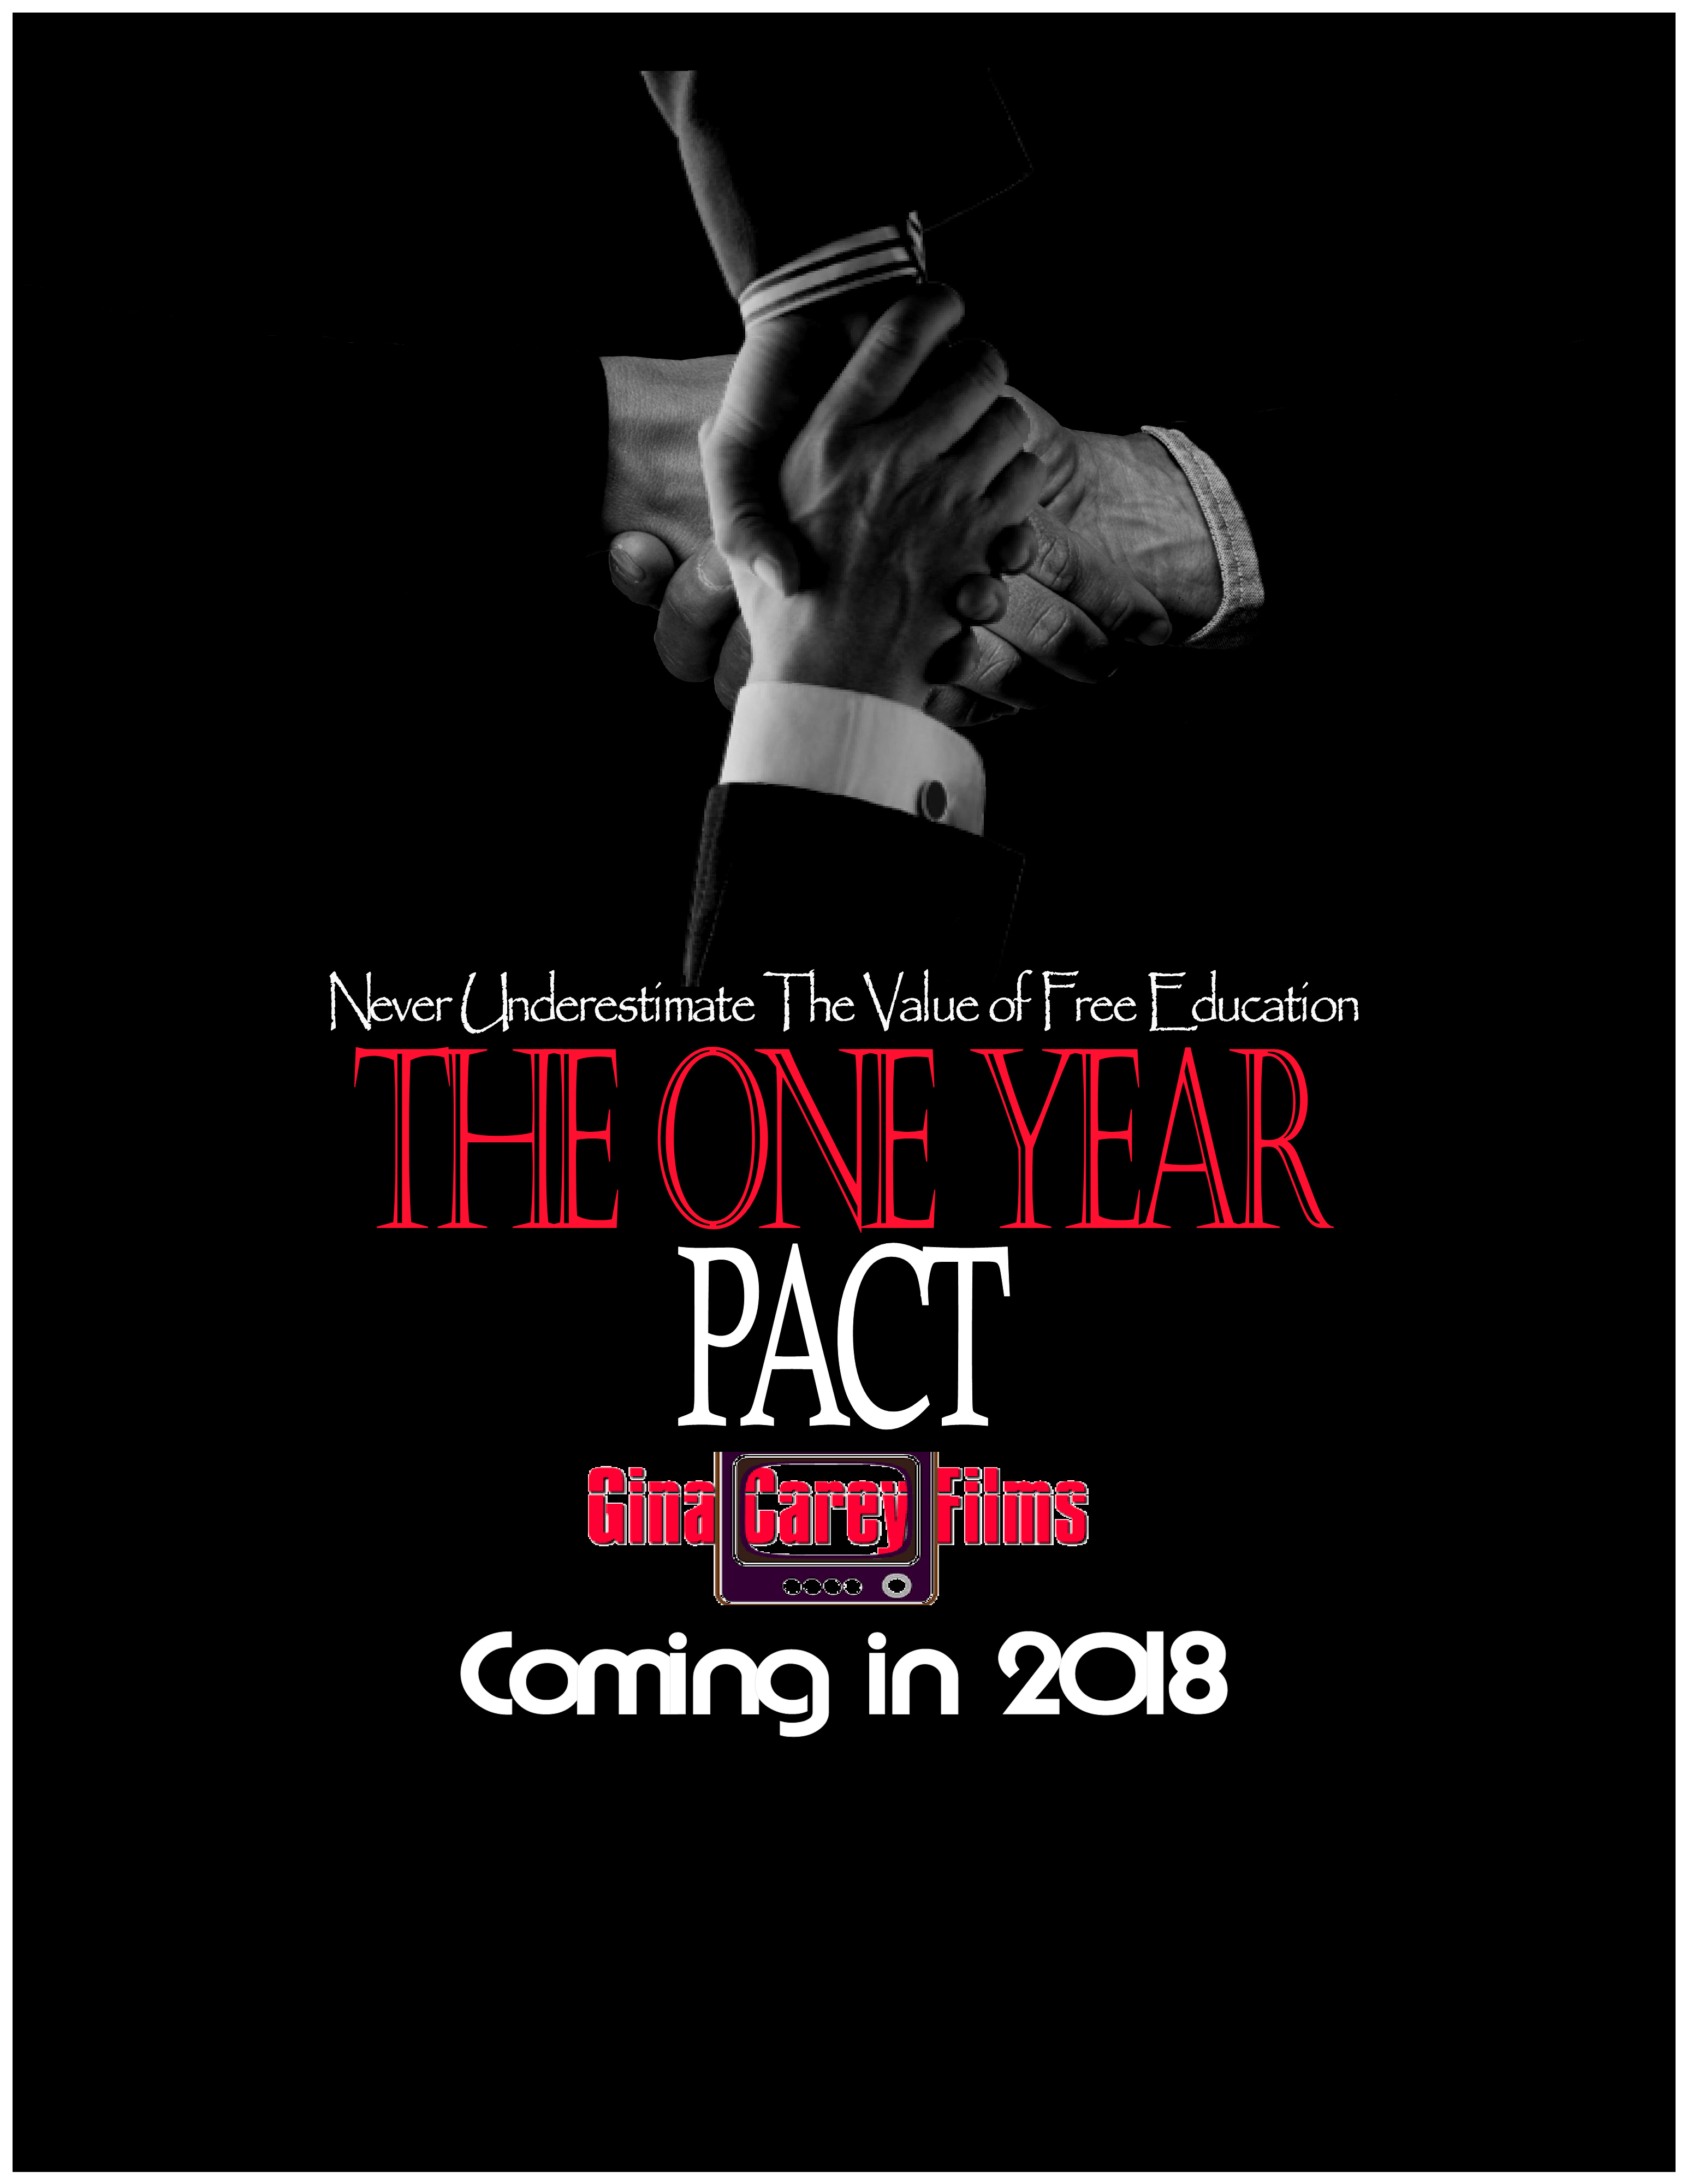 The One Year Pact Advert Poster